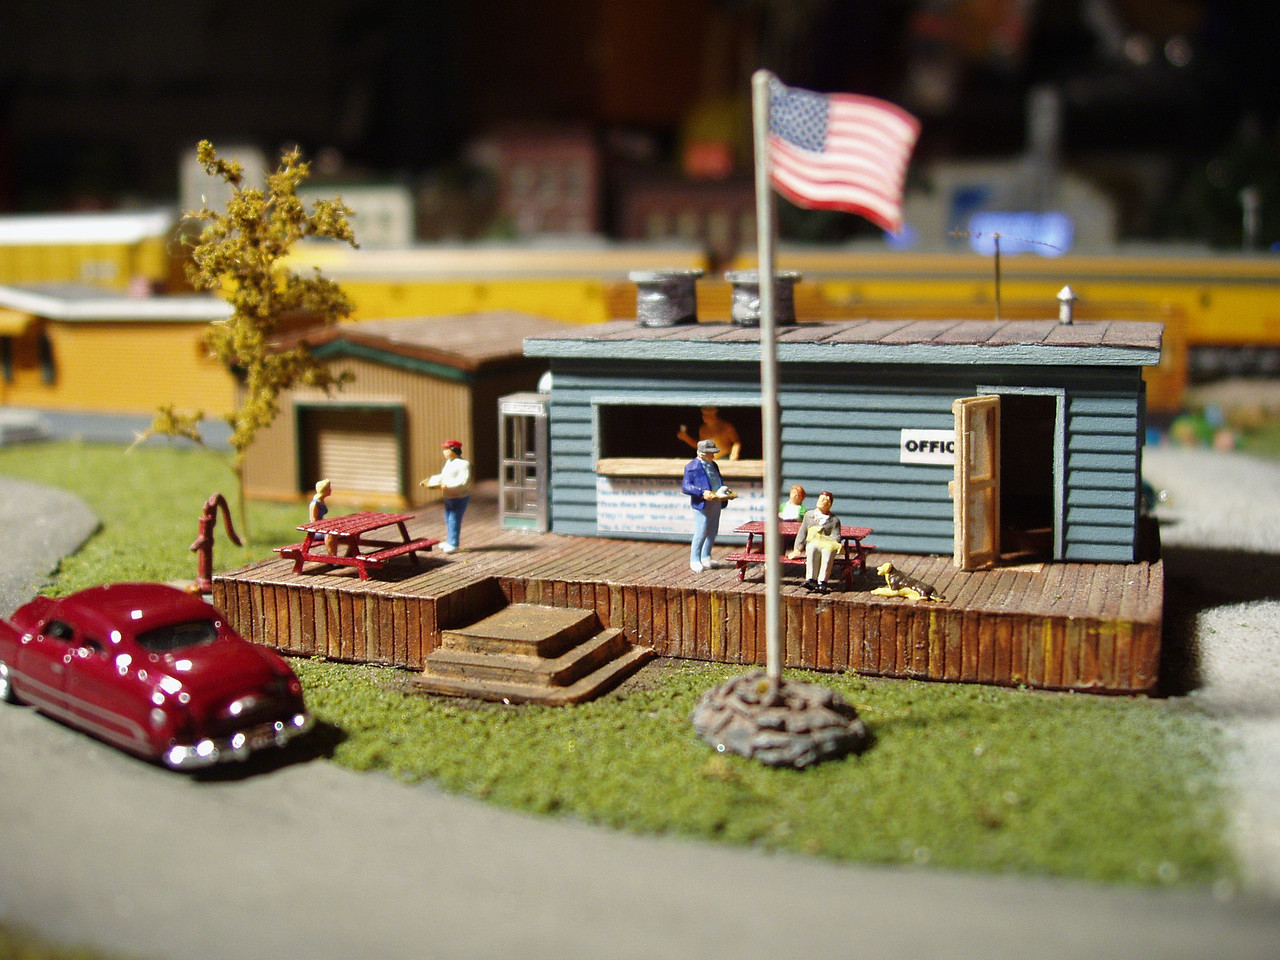 """This is the main office and snack bar for the """"Tinseltown Trailer Park"""".  The trailer park along with this """"kit bashed"""" building were my idea; the trailer park is located on """"the other side of the tracks"""" from the drive-in theatre.  """"Kit bashing"""" refers to taking parts from one or several existing model kits to create something different.  In this case I added the new wood-siding facade to an existing building, cut a hole in the side to create a snack bar counter, and added a REAL screen door (complete with tiny paper hinges so that it really opens and closes).  The """"Office"""" sign and """"Welcome"""" door mat were created using a laser printer and have text large enough to read, but the menu below the counter is just a bit too tiny for the printer resolution - and, thus, hard to make-out.  Items on the menu are movie themed; """"Ma and Pa Kettle Corn"""", """"From Here to Eternity Footlong Hotdog"""" and """"To Have and Have Not Brat""""  - available with or without sauerkraut, the sign says.  I just wish it could be read.  I added the phone booth and picnic tables, too - which are made from tiny folded pieces of metal (remember, this is 160th scale)."""